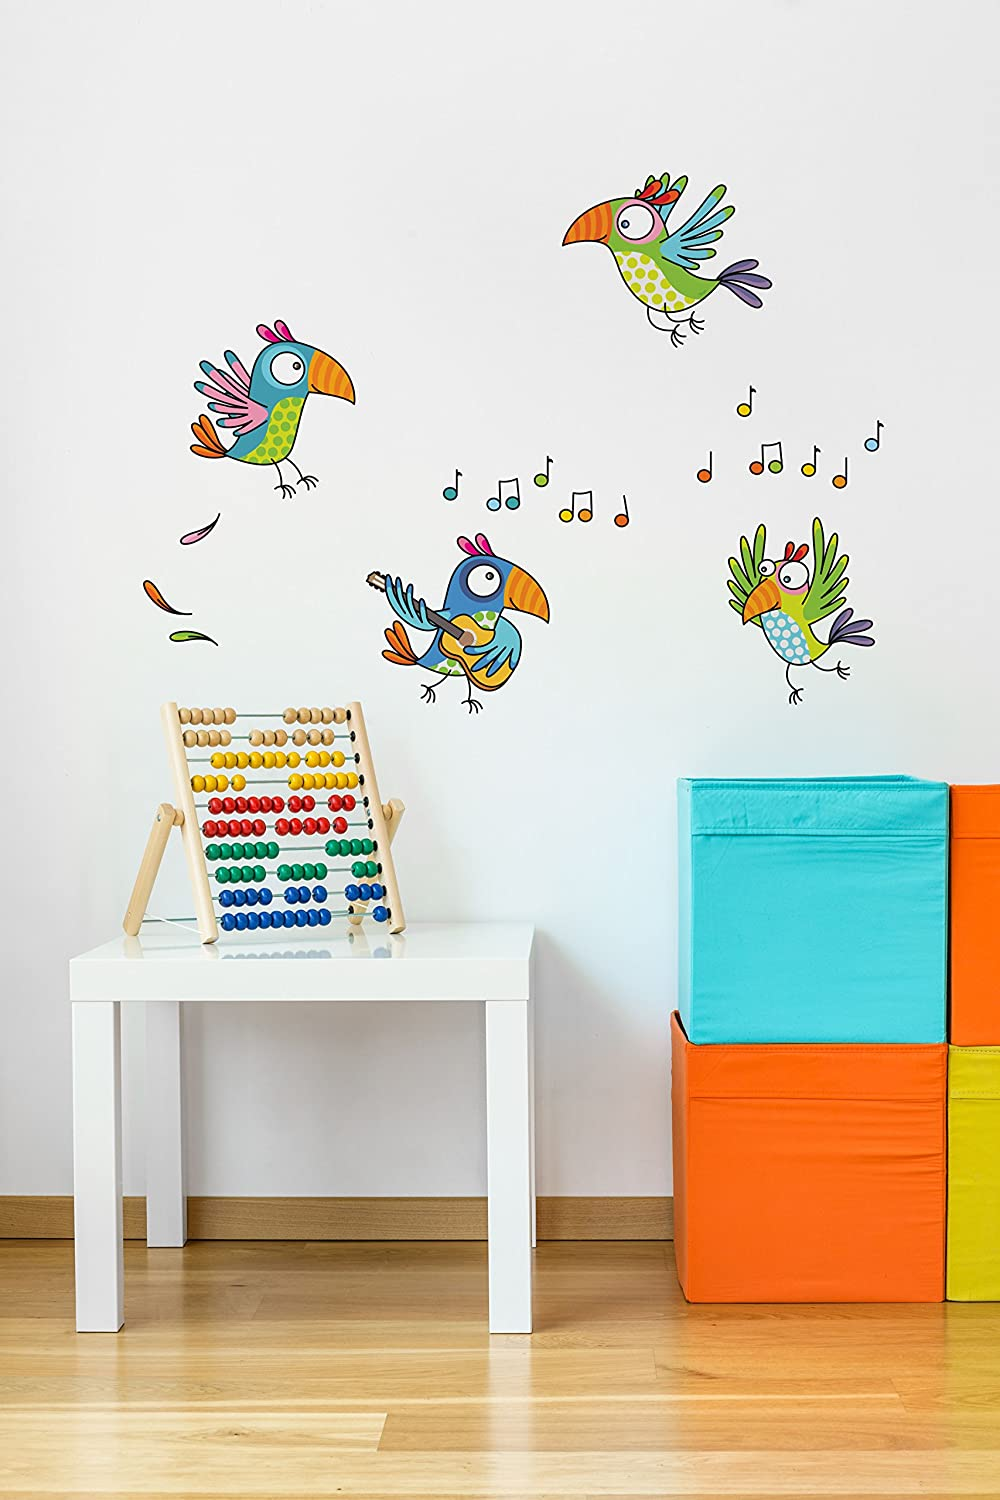 AdzifTowards Happiness Wall Mural Multicolored